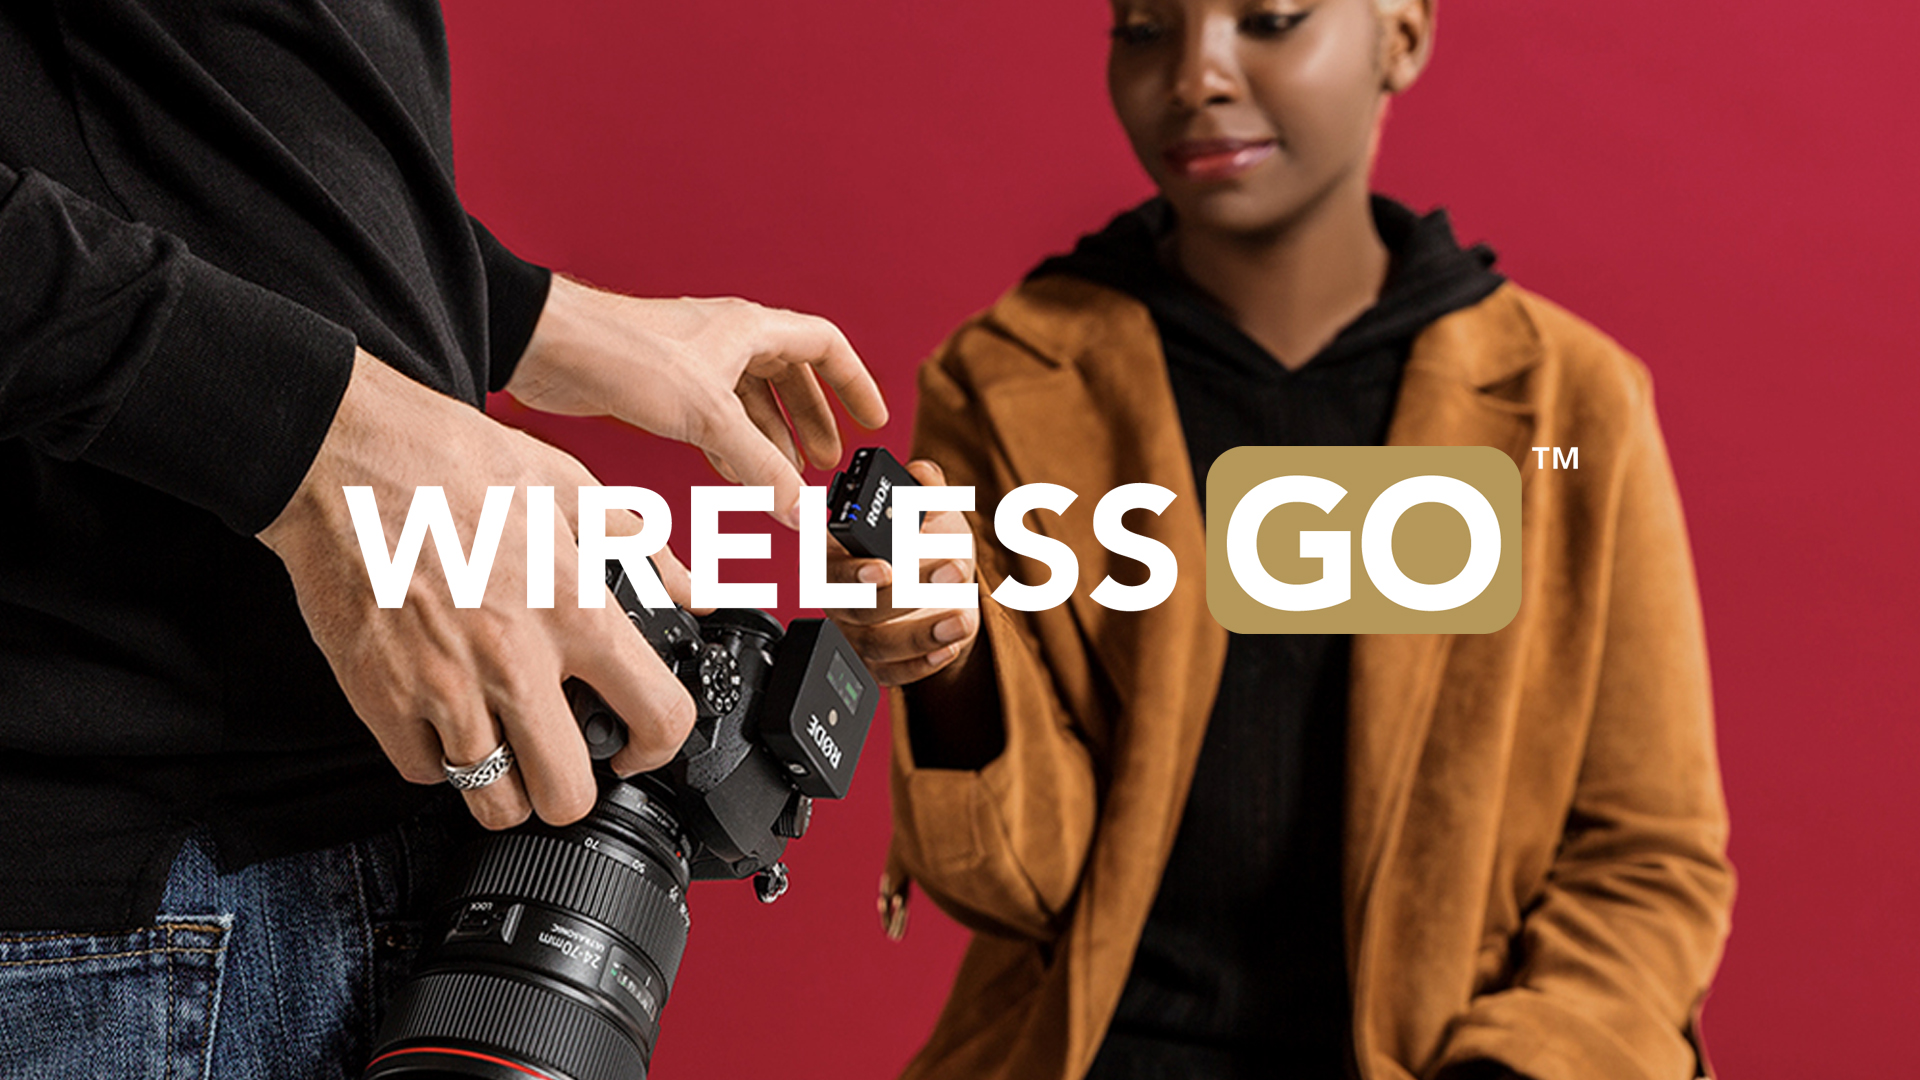 Wireless_GO_MAIN_IMAGE